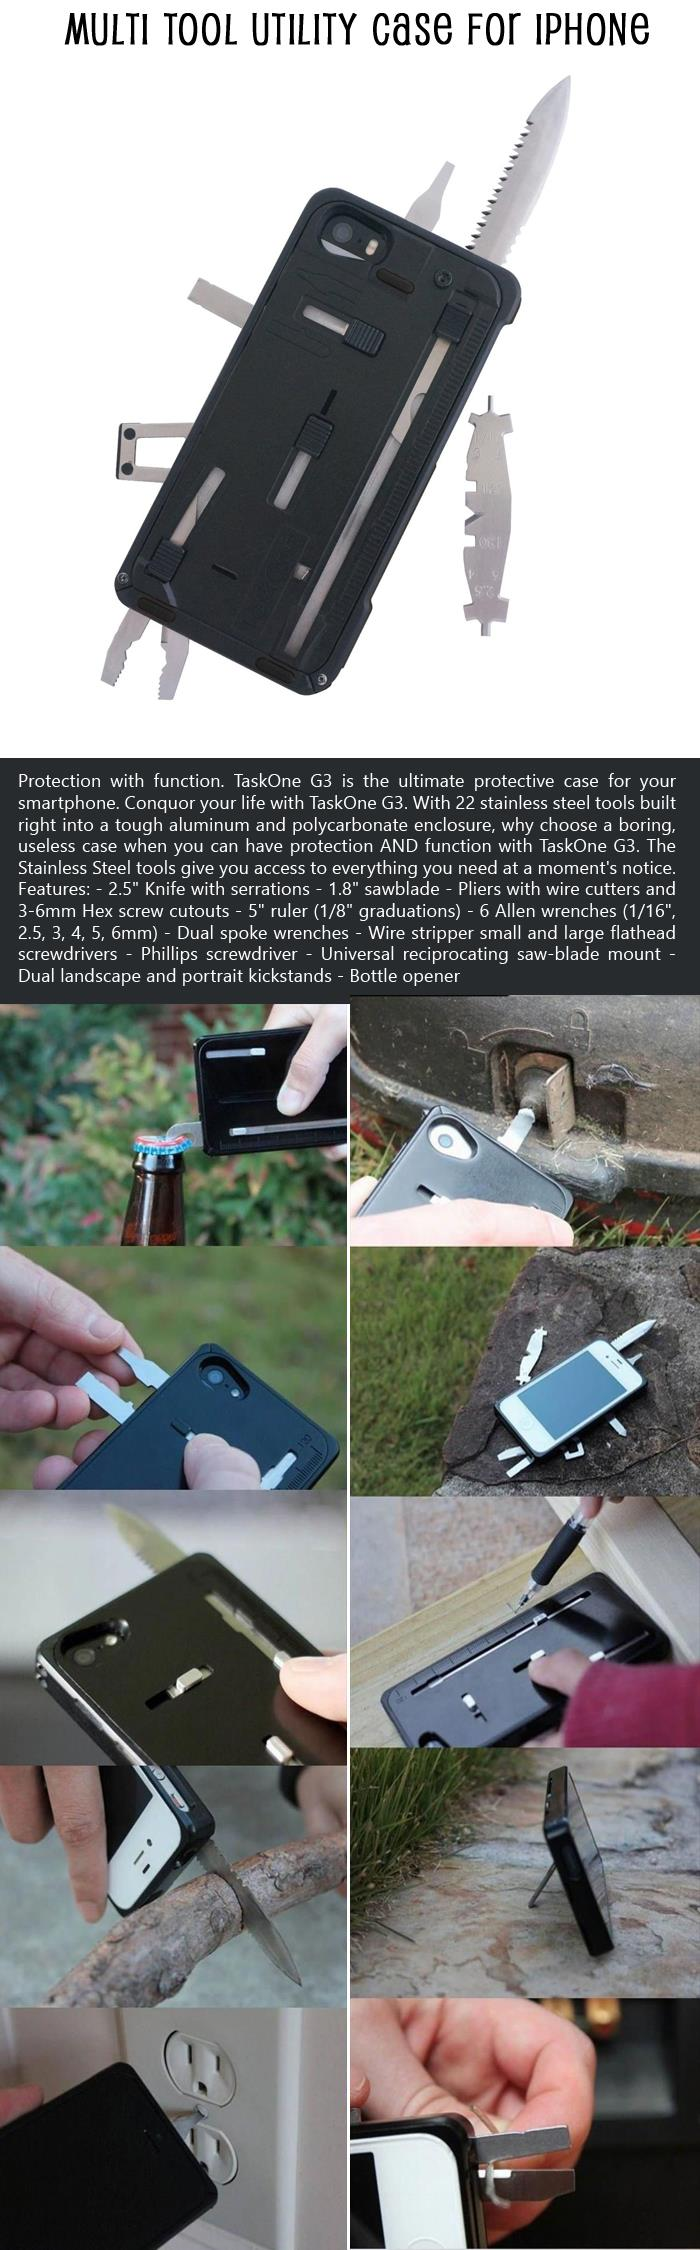 Multi Tool Utility Case for iPhone